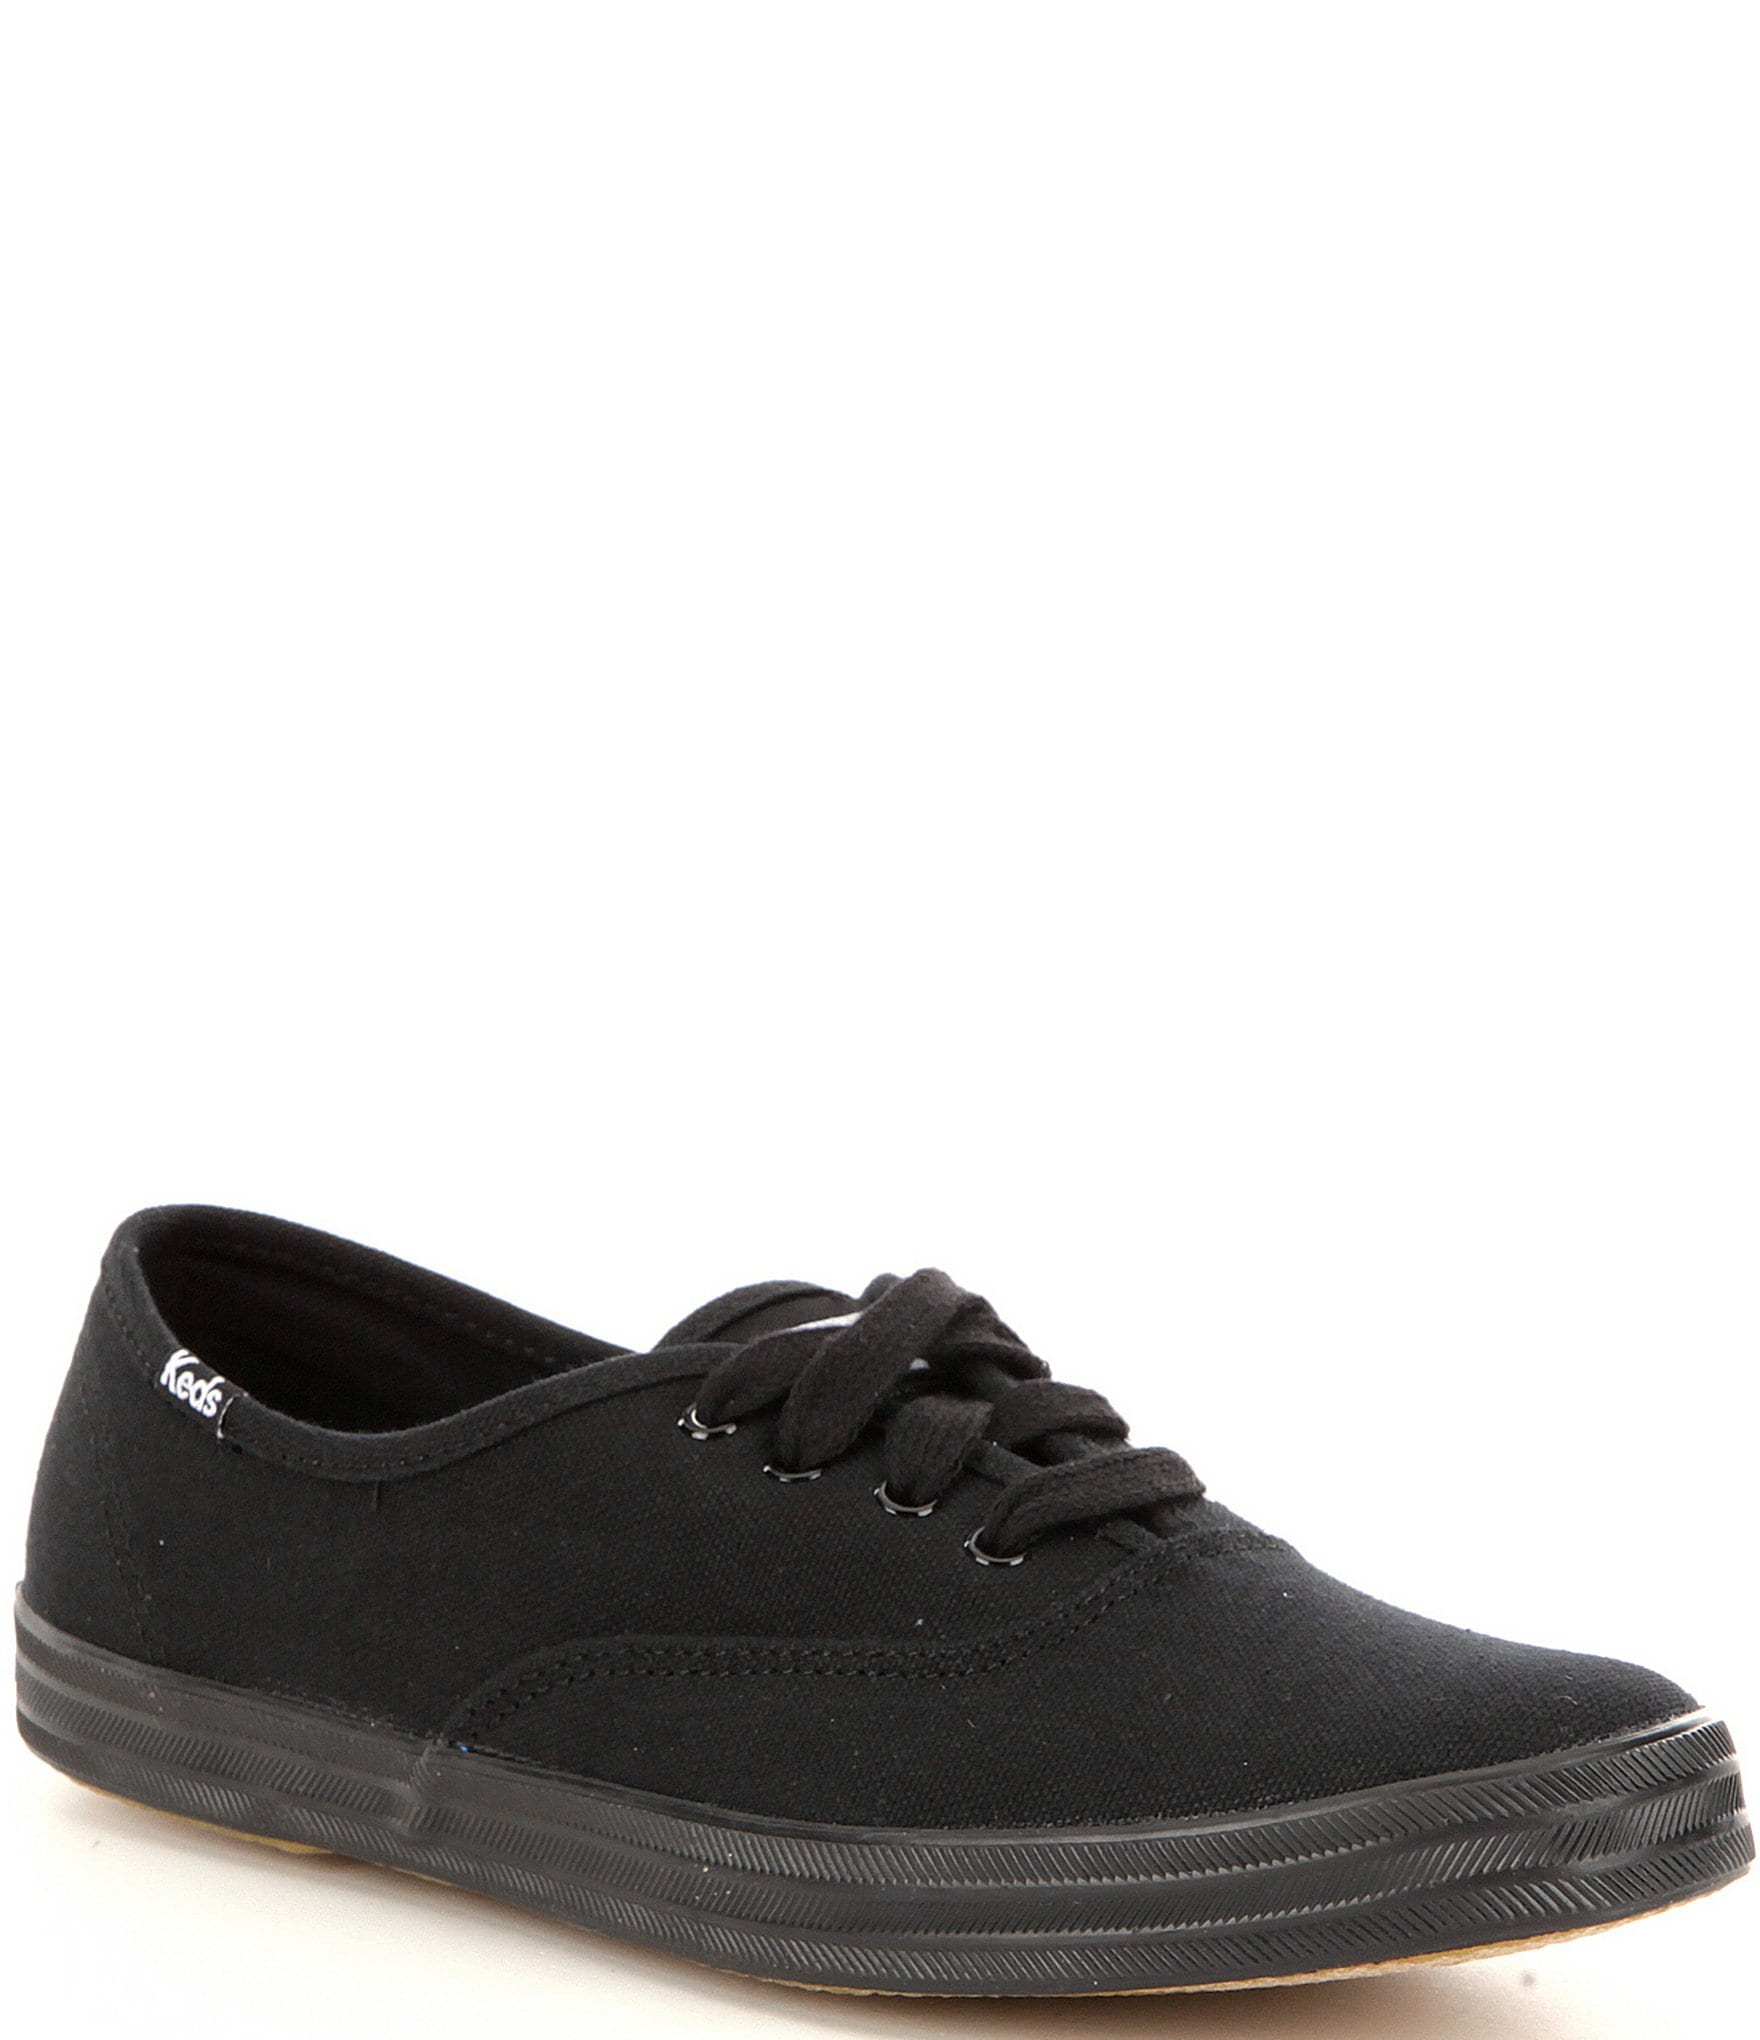 7883b8bf0eb Keds Women s Lace-Up Sneakers